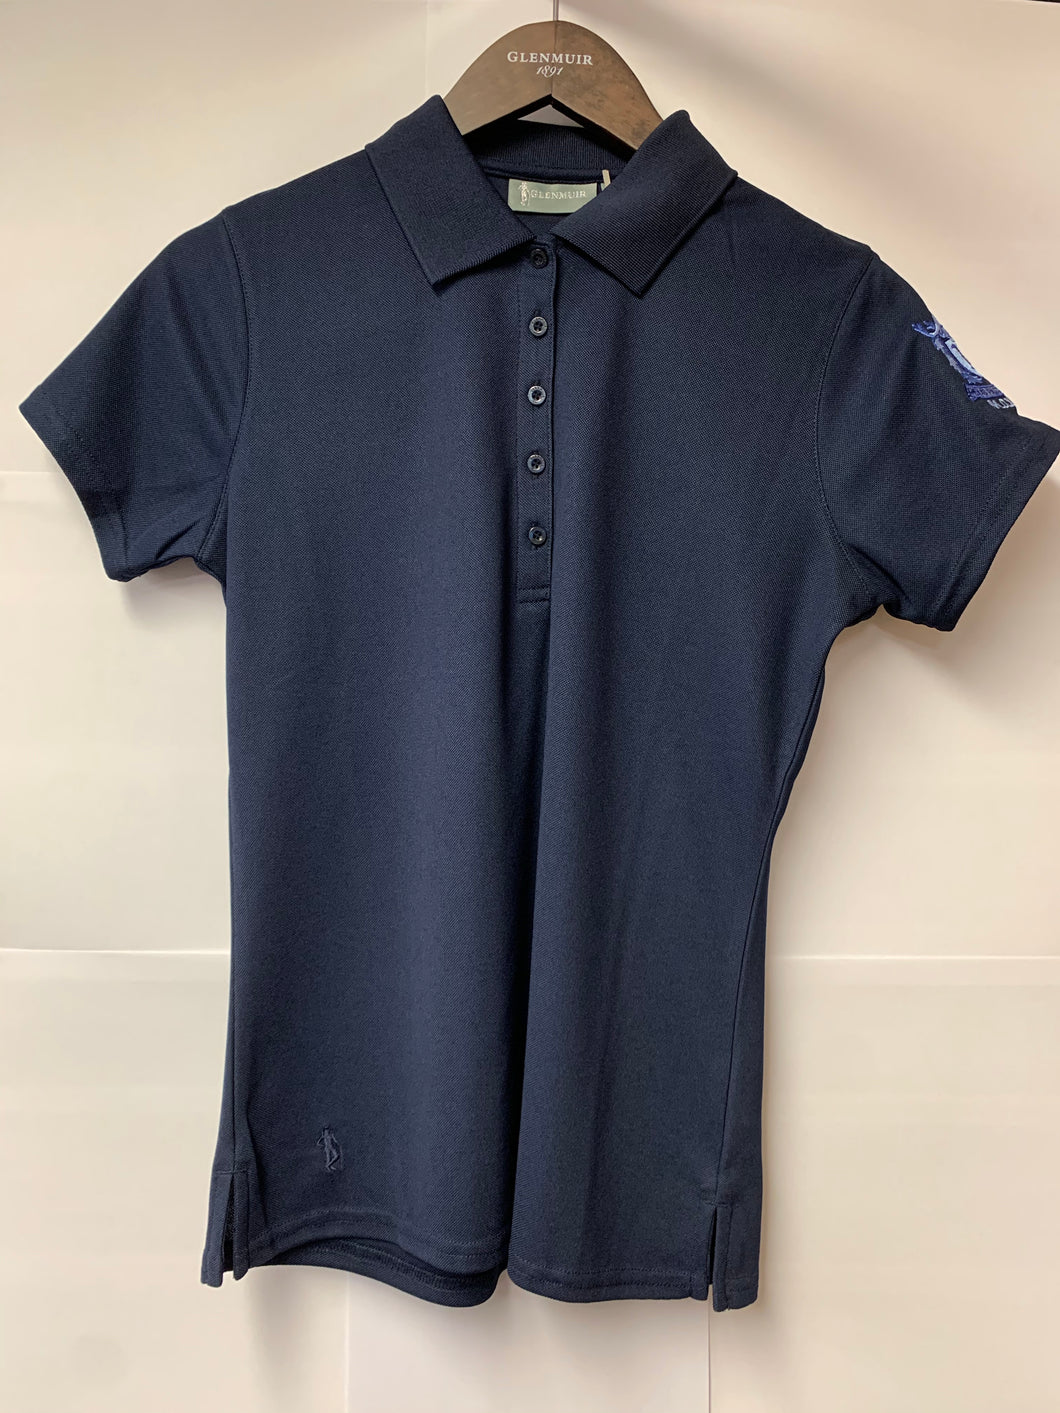 Glenmuir Ladies MDGC Sleeve Crested Polo